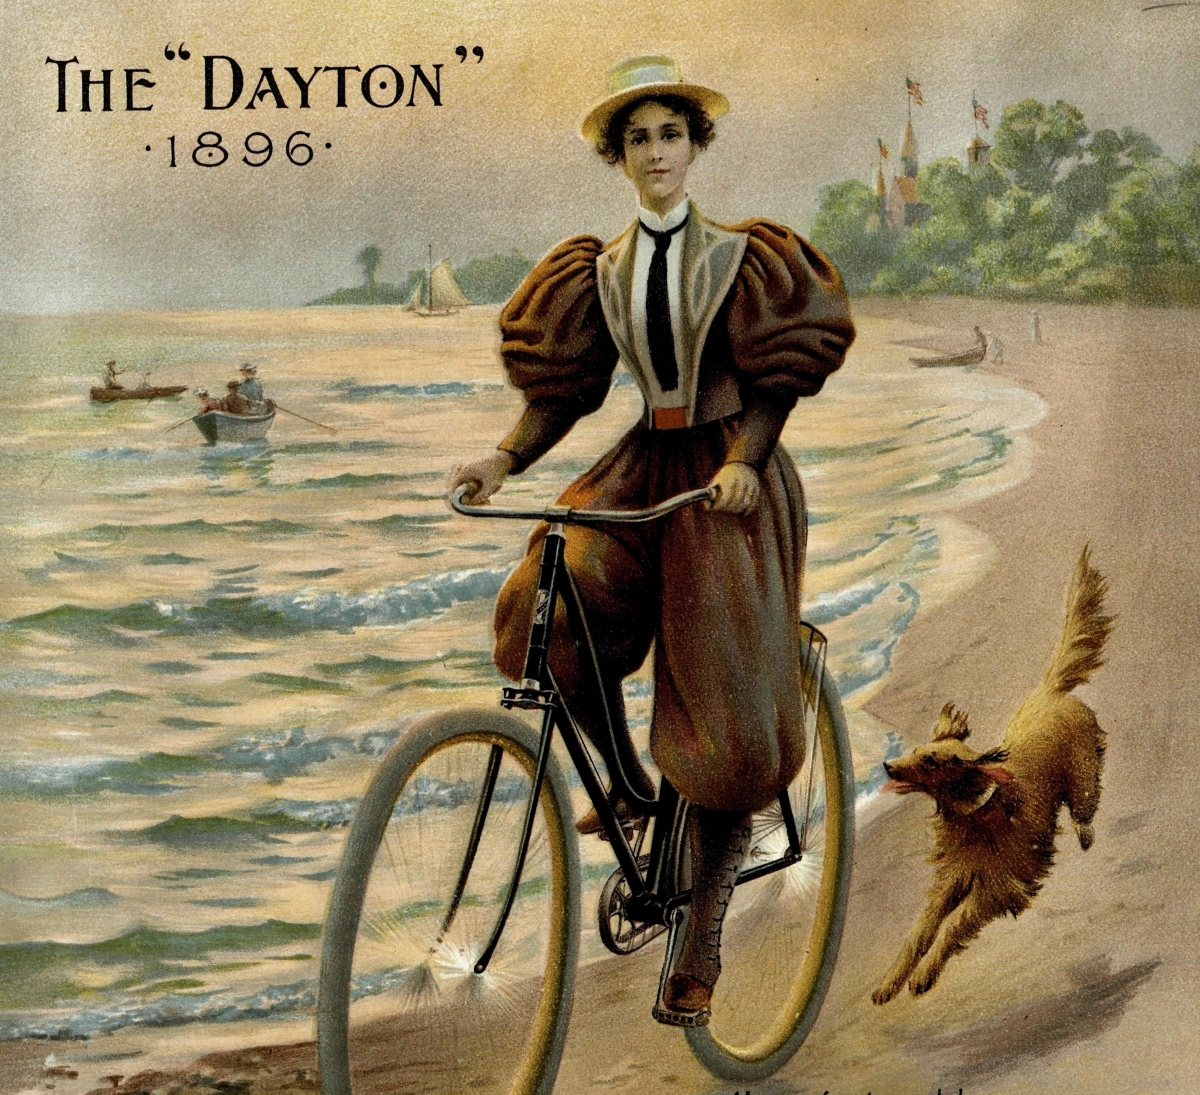 Dayton_bicycles_manufactured_by_the_Davis_Sewing__1896 (1 of 1) (1)_Page_01.jpg